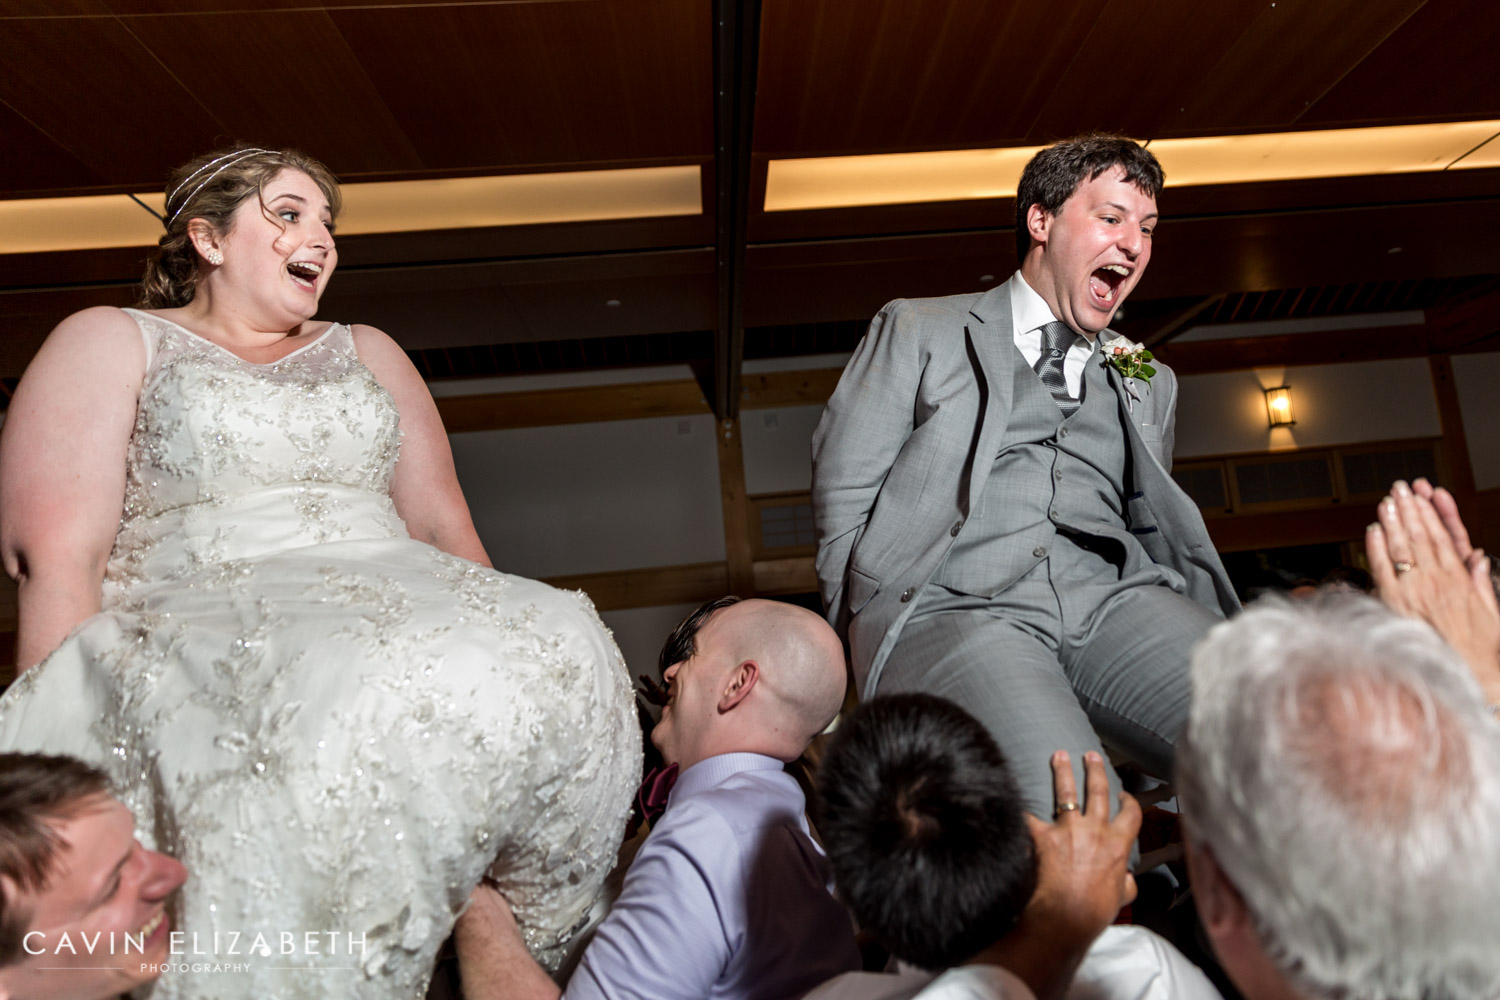 Jewish Wedding Hora, bride and groom laughing and screaming during their wedding horah, fun wedding reception candid photo